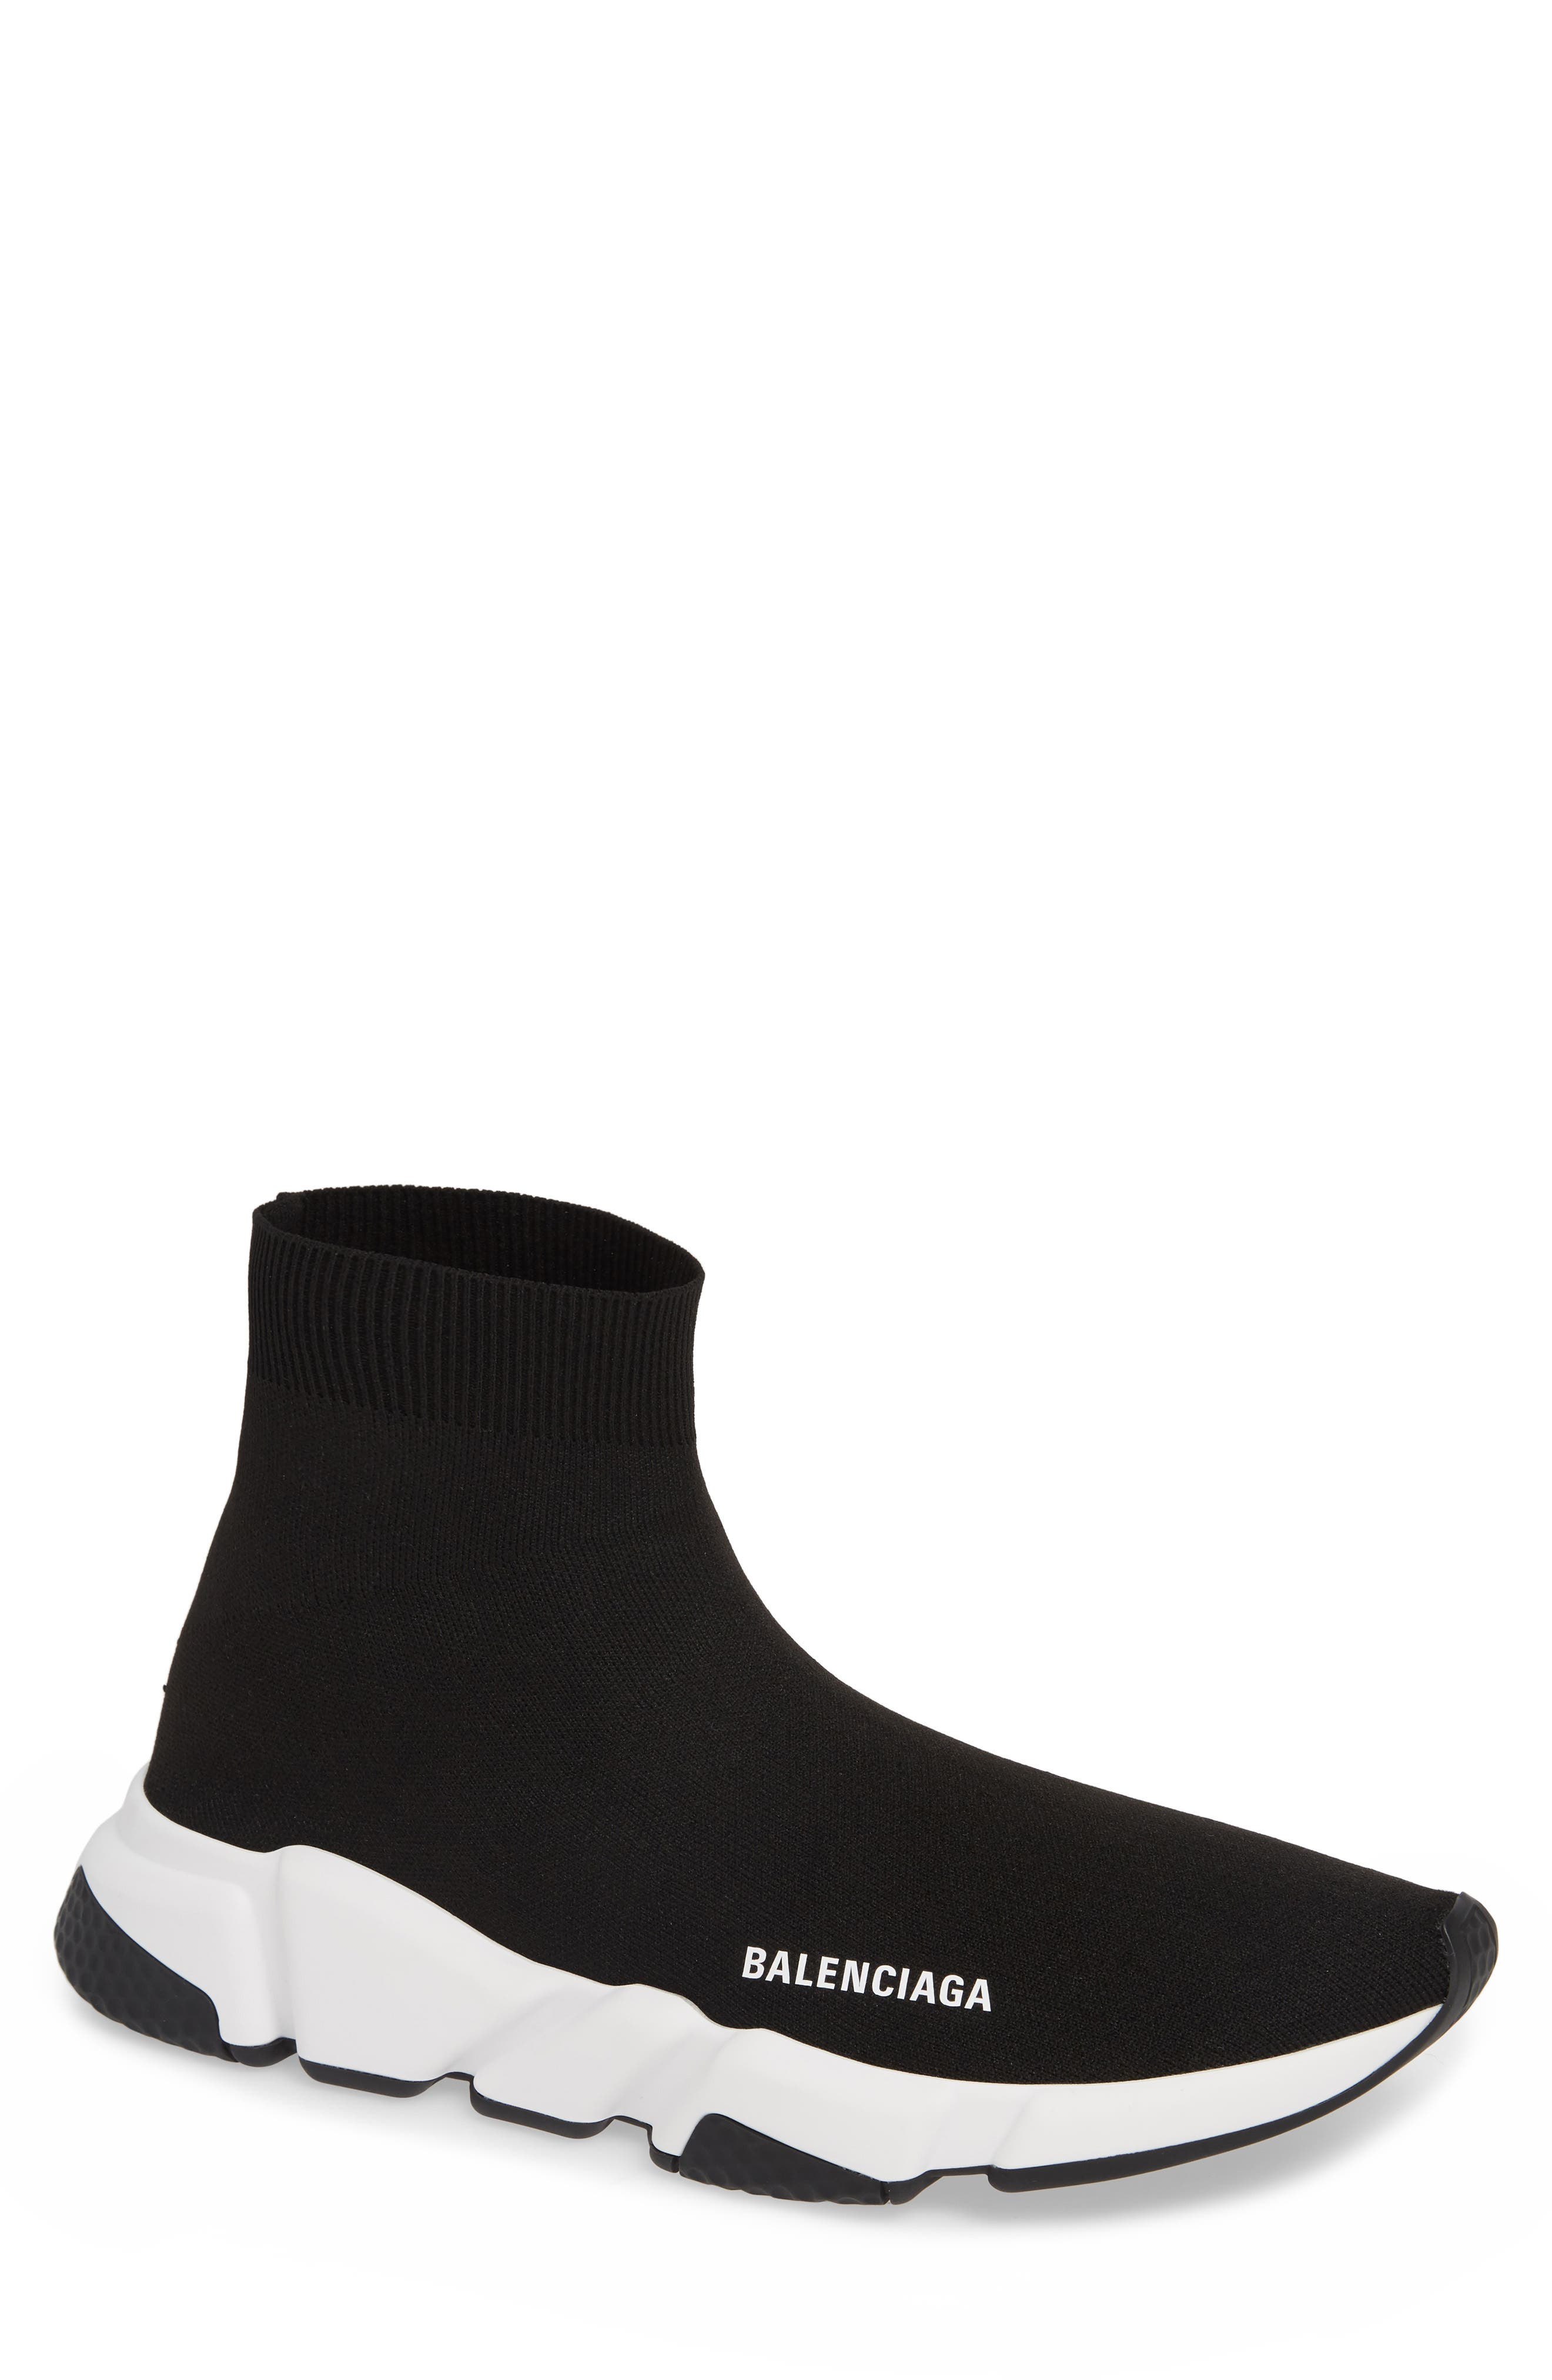 BALENCIAGA, Speed High Slip-On, Main thumbnail 1, color, NOIR